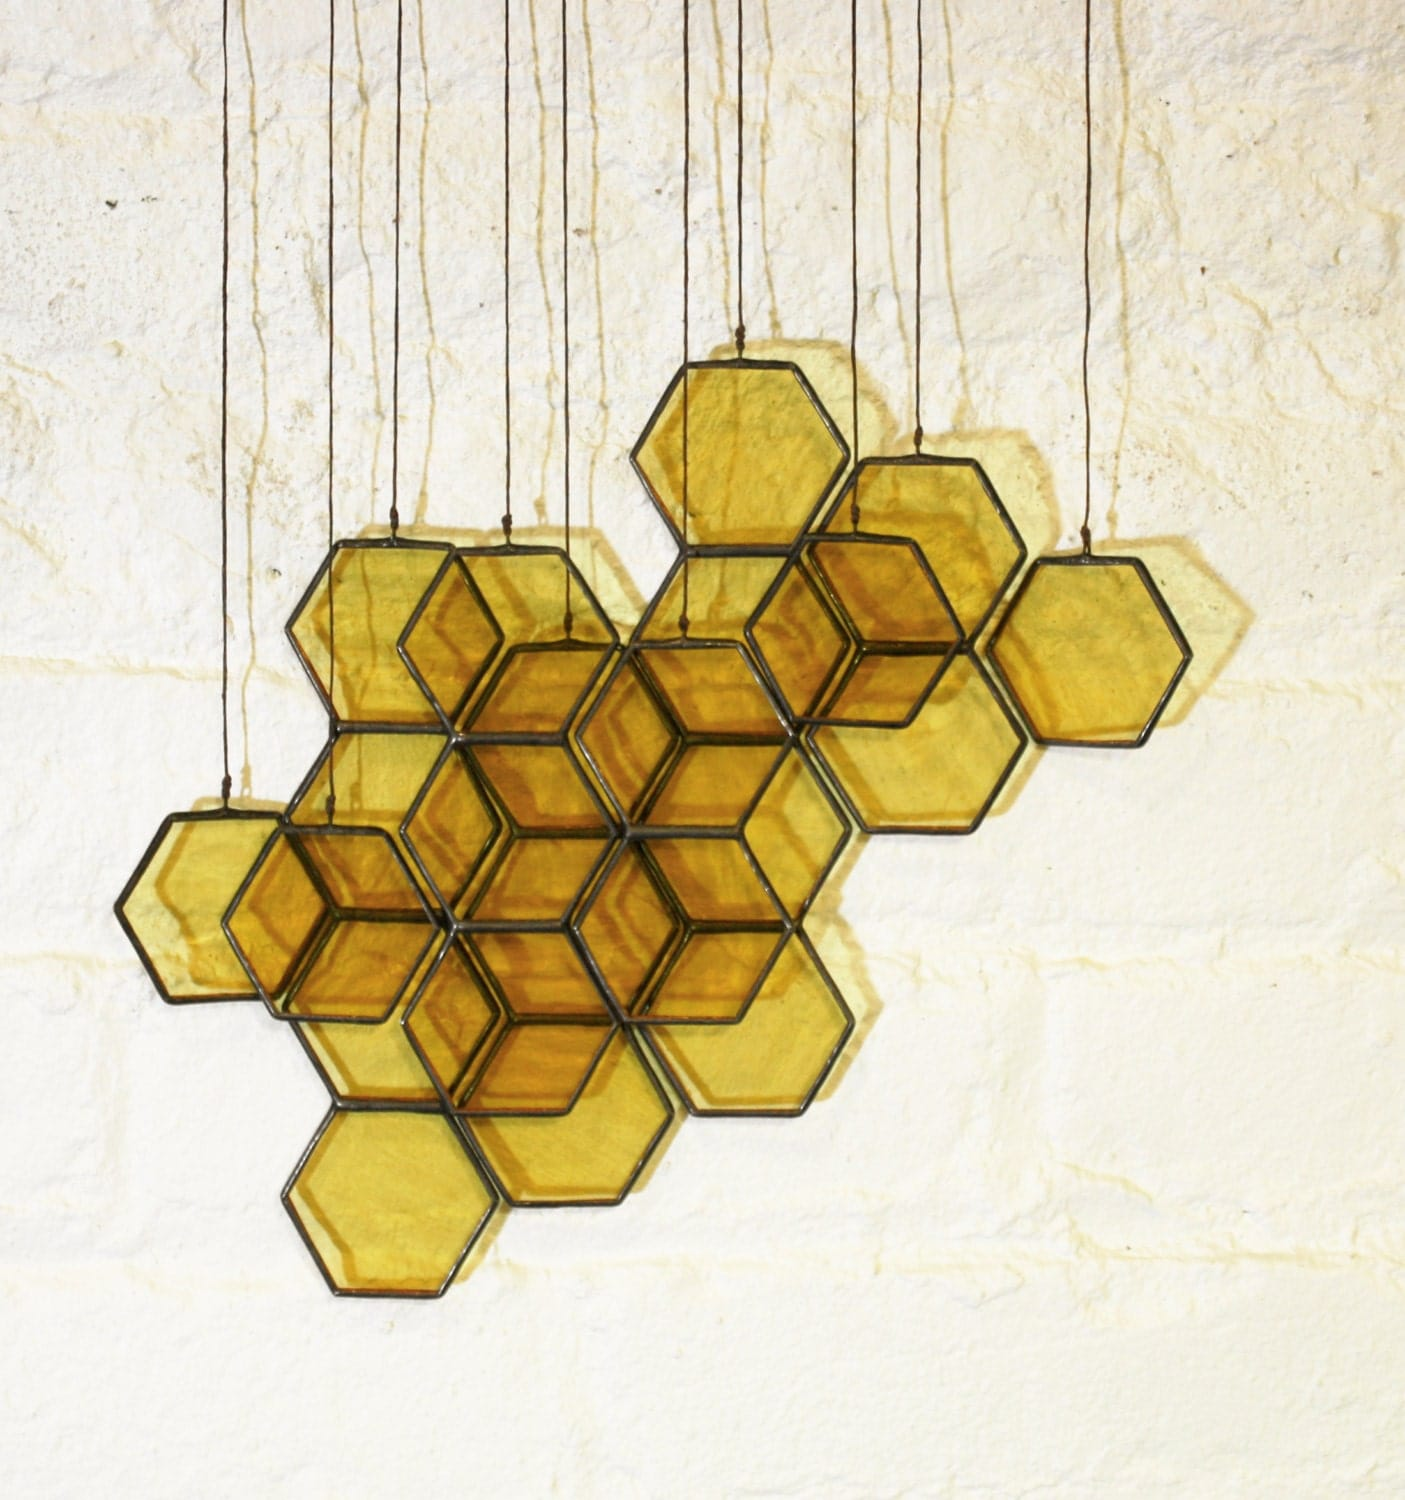 Stained Glass Honeycomb Drops (set of 10) - BespokeGlassTile